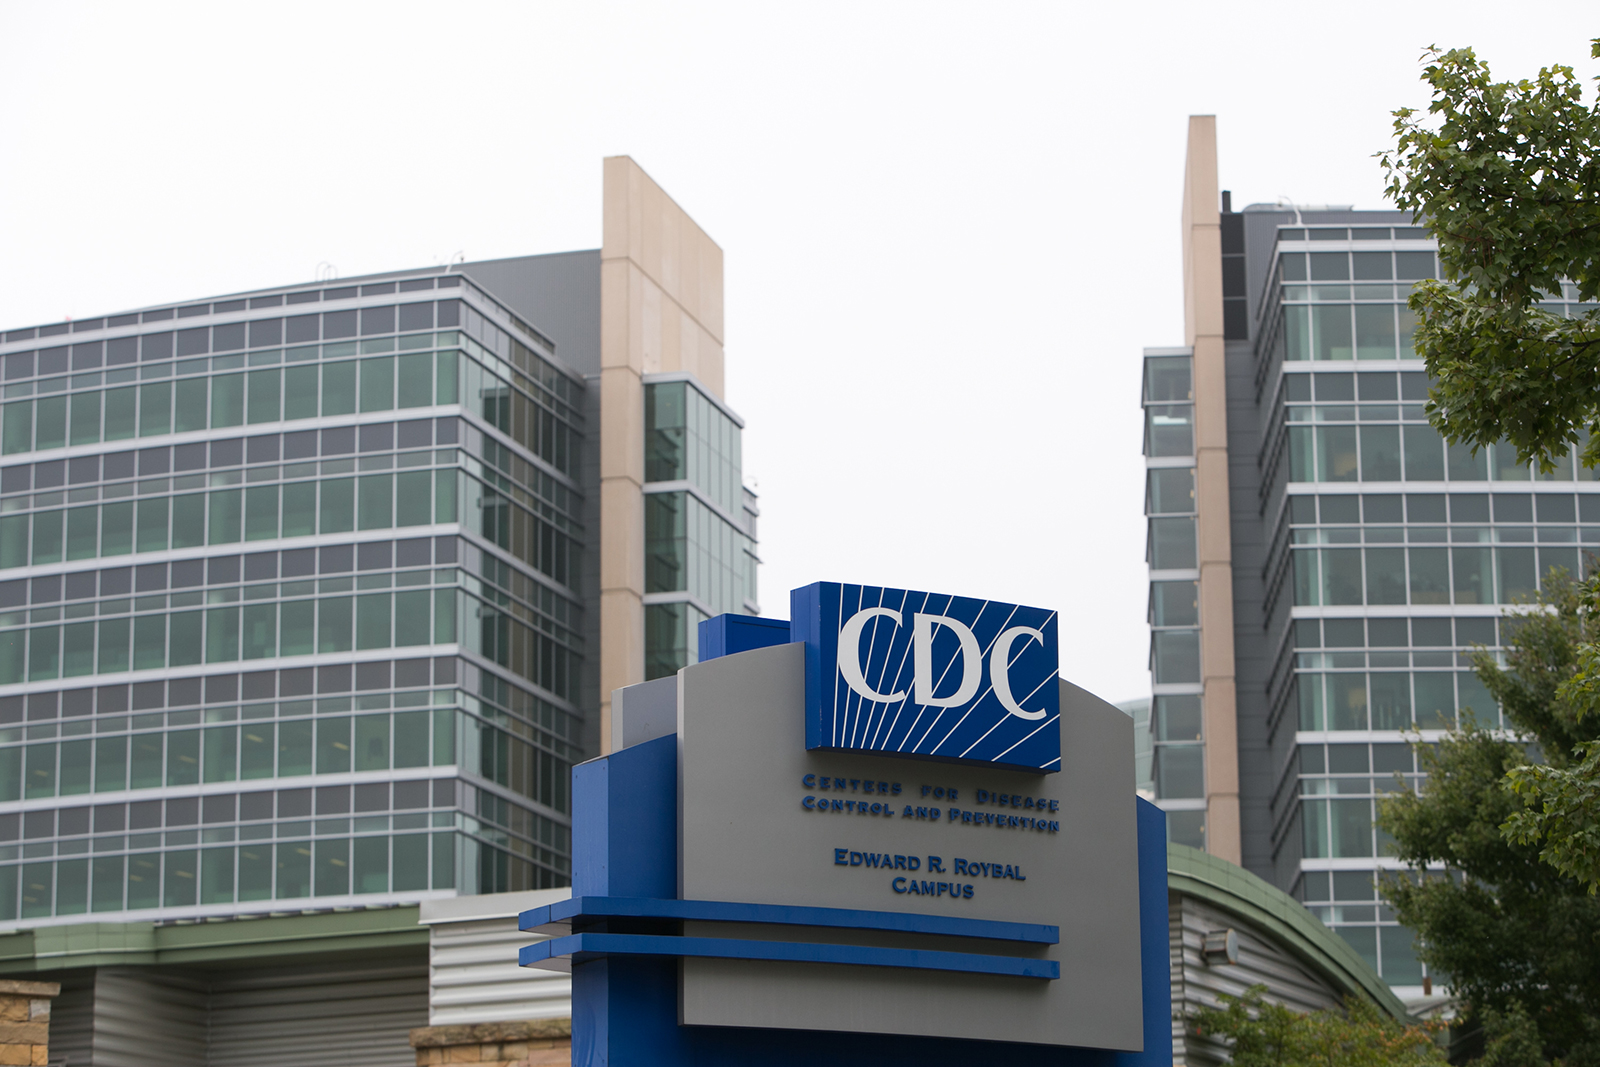 CDC headquarters is seen on October 13, 2014 in Atlanta, Georgia